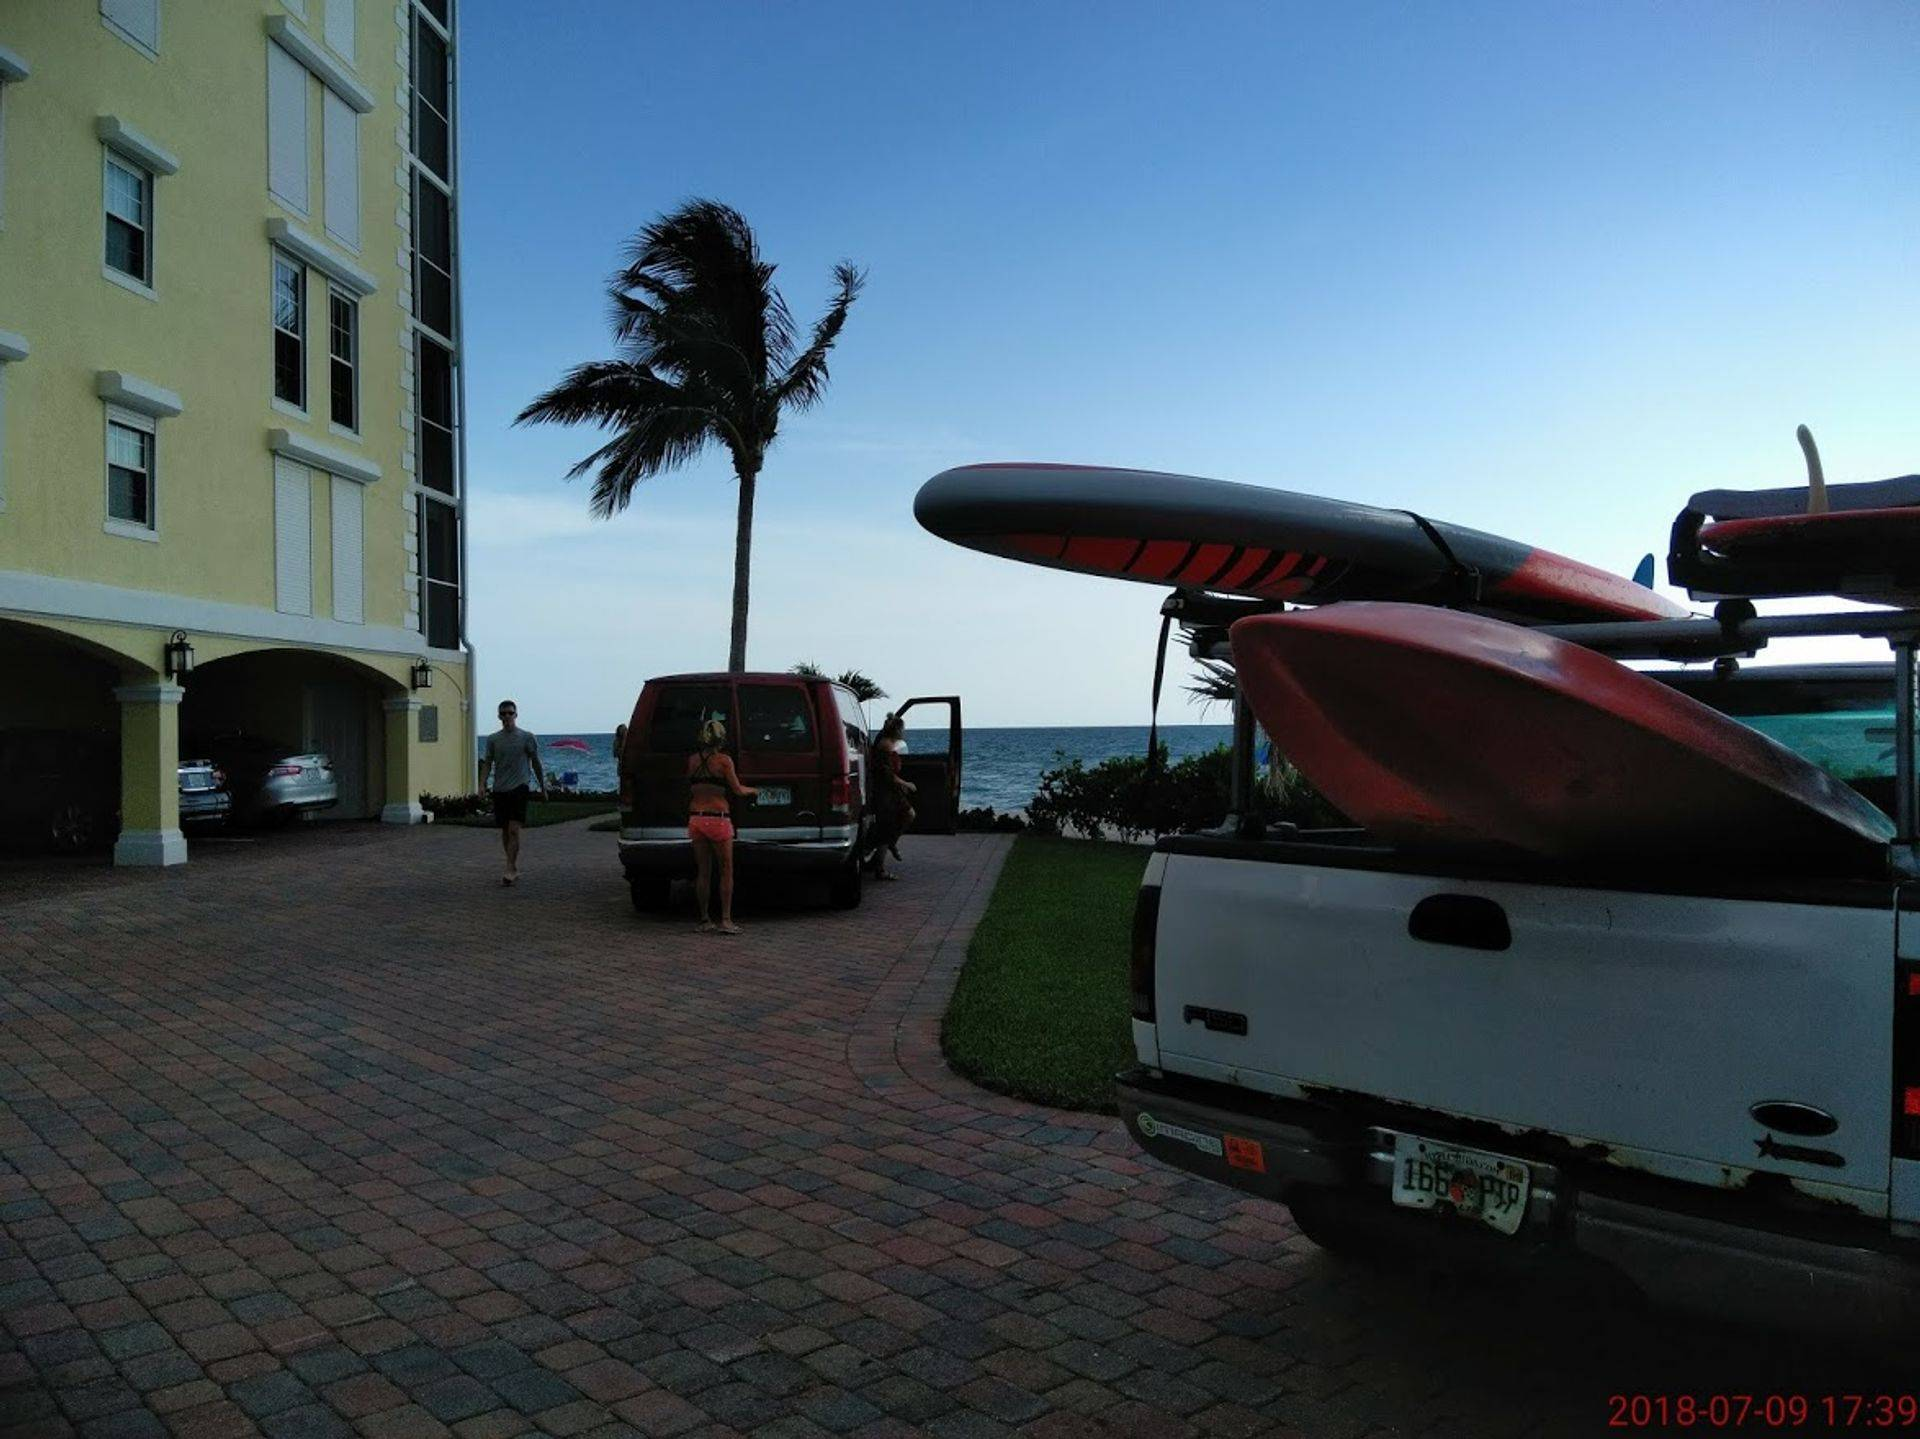 paddleboard rentals delivery is free